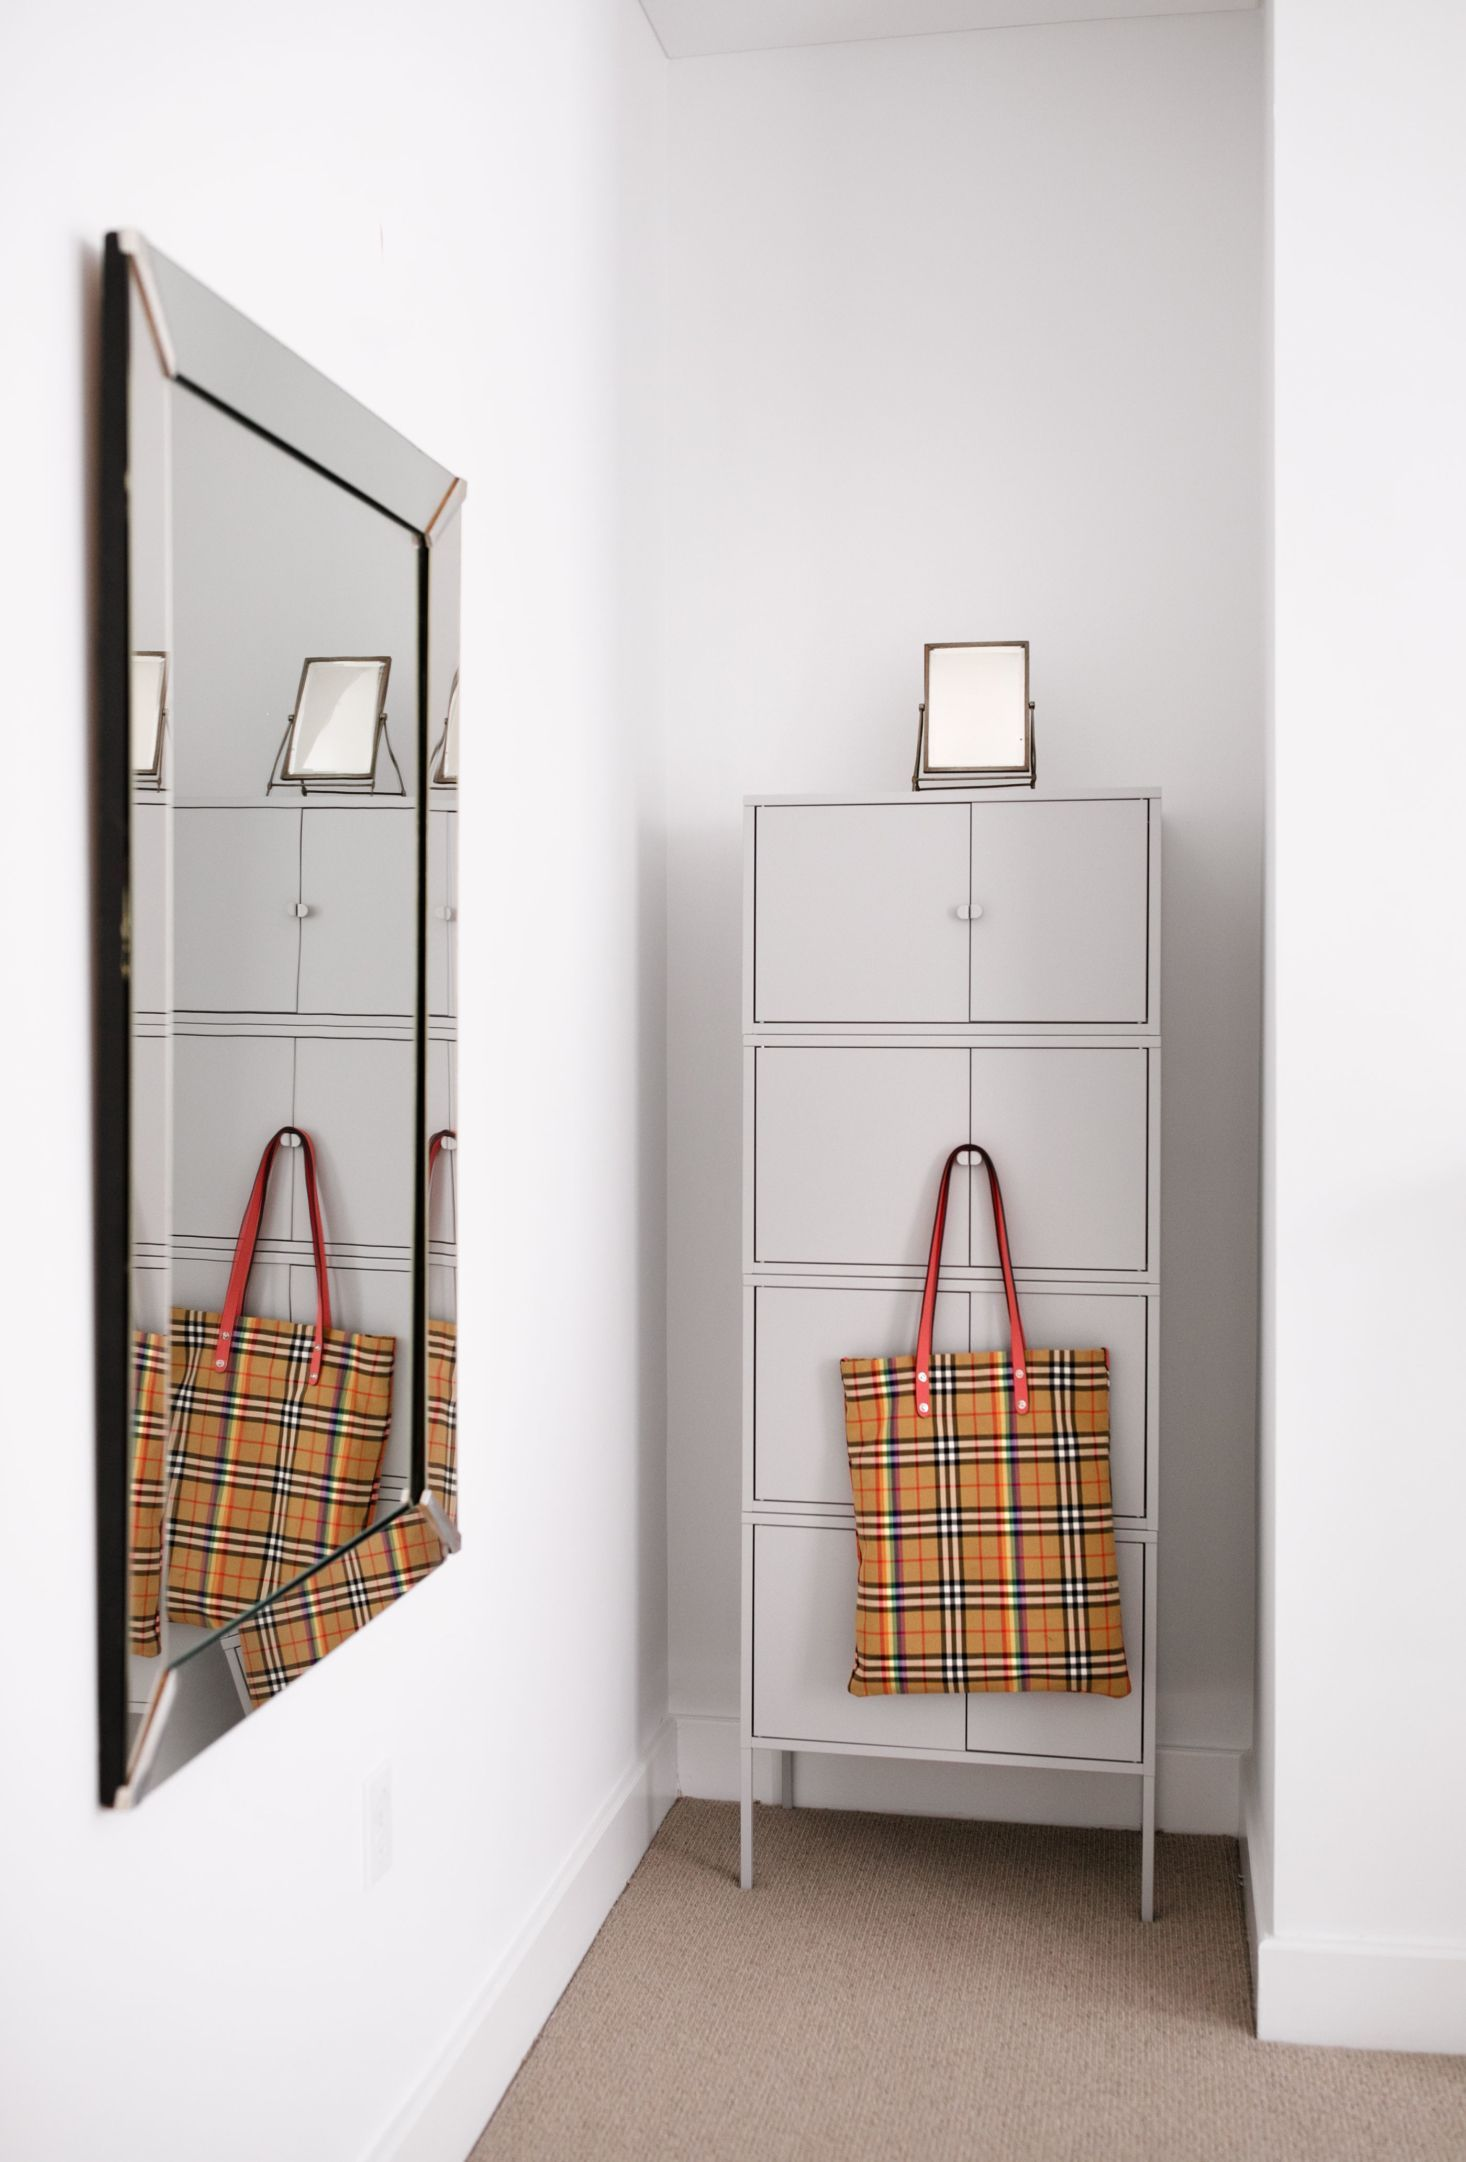 A Mesh Burberry Bag Provides A Dash Of Color Ikea Storage Unit 35 X 4 Ikea Storage Furniture Ikea Storage Units Ikea Storage